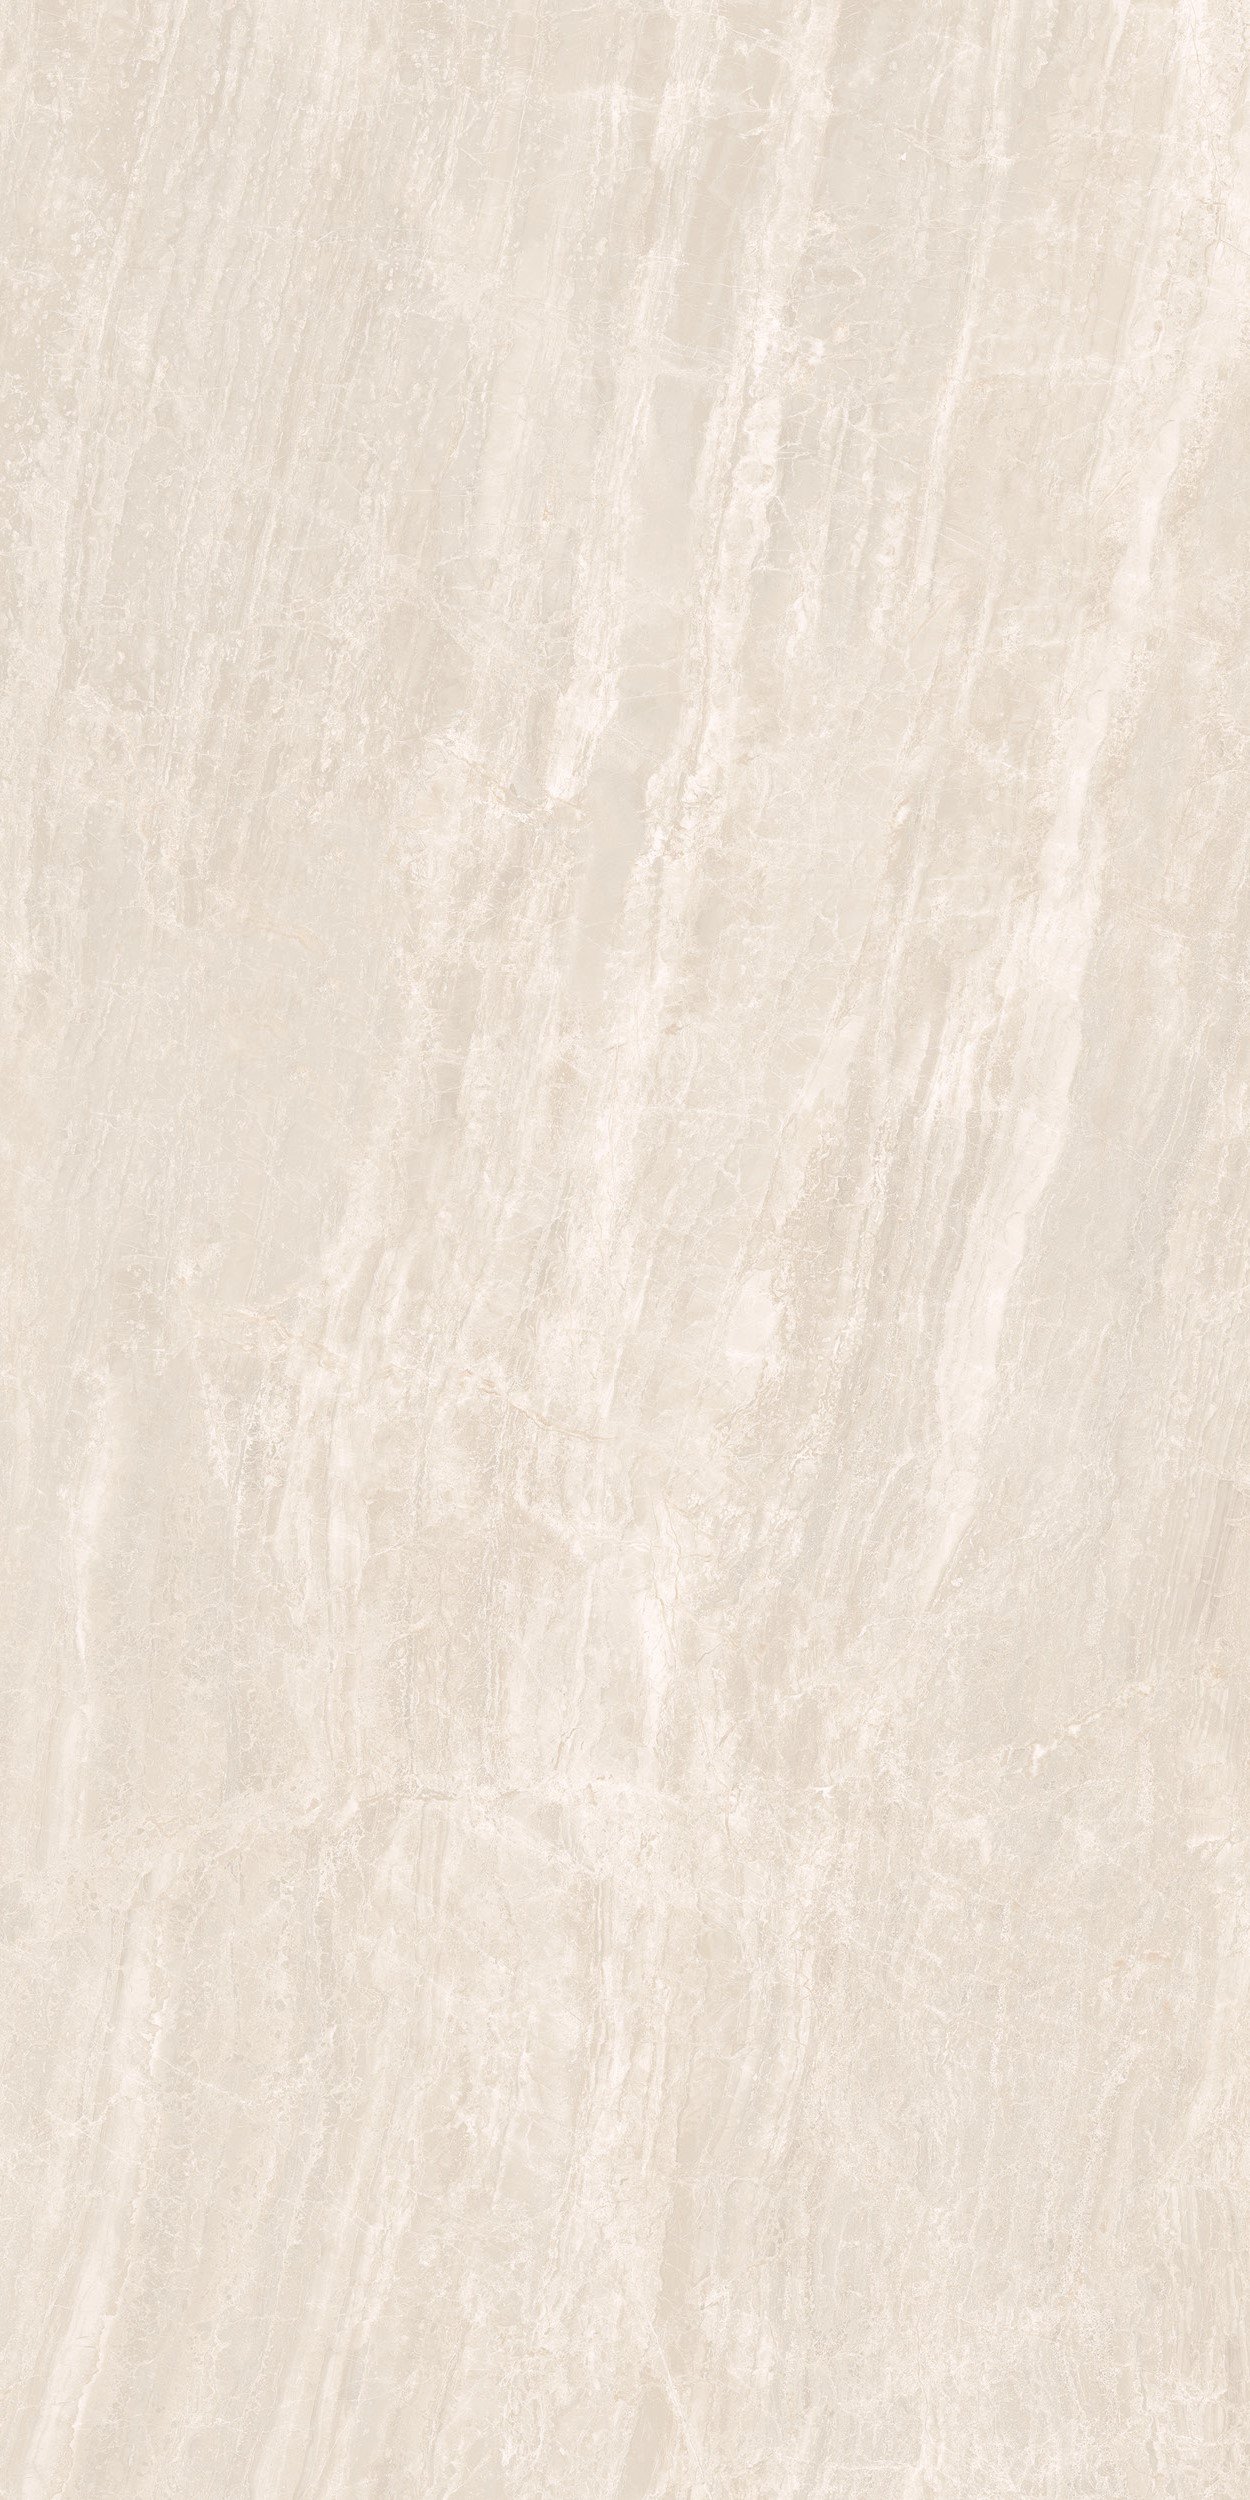 24 X 48 Cosmic Ivory HIGH POLISHED Rectified Porcelain Tile